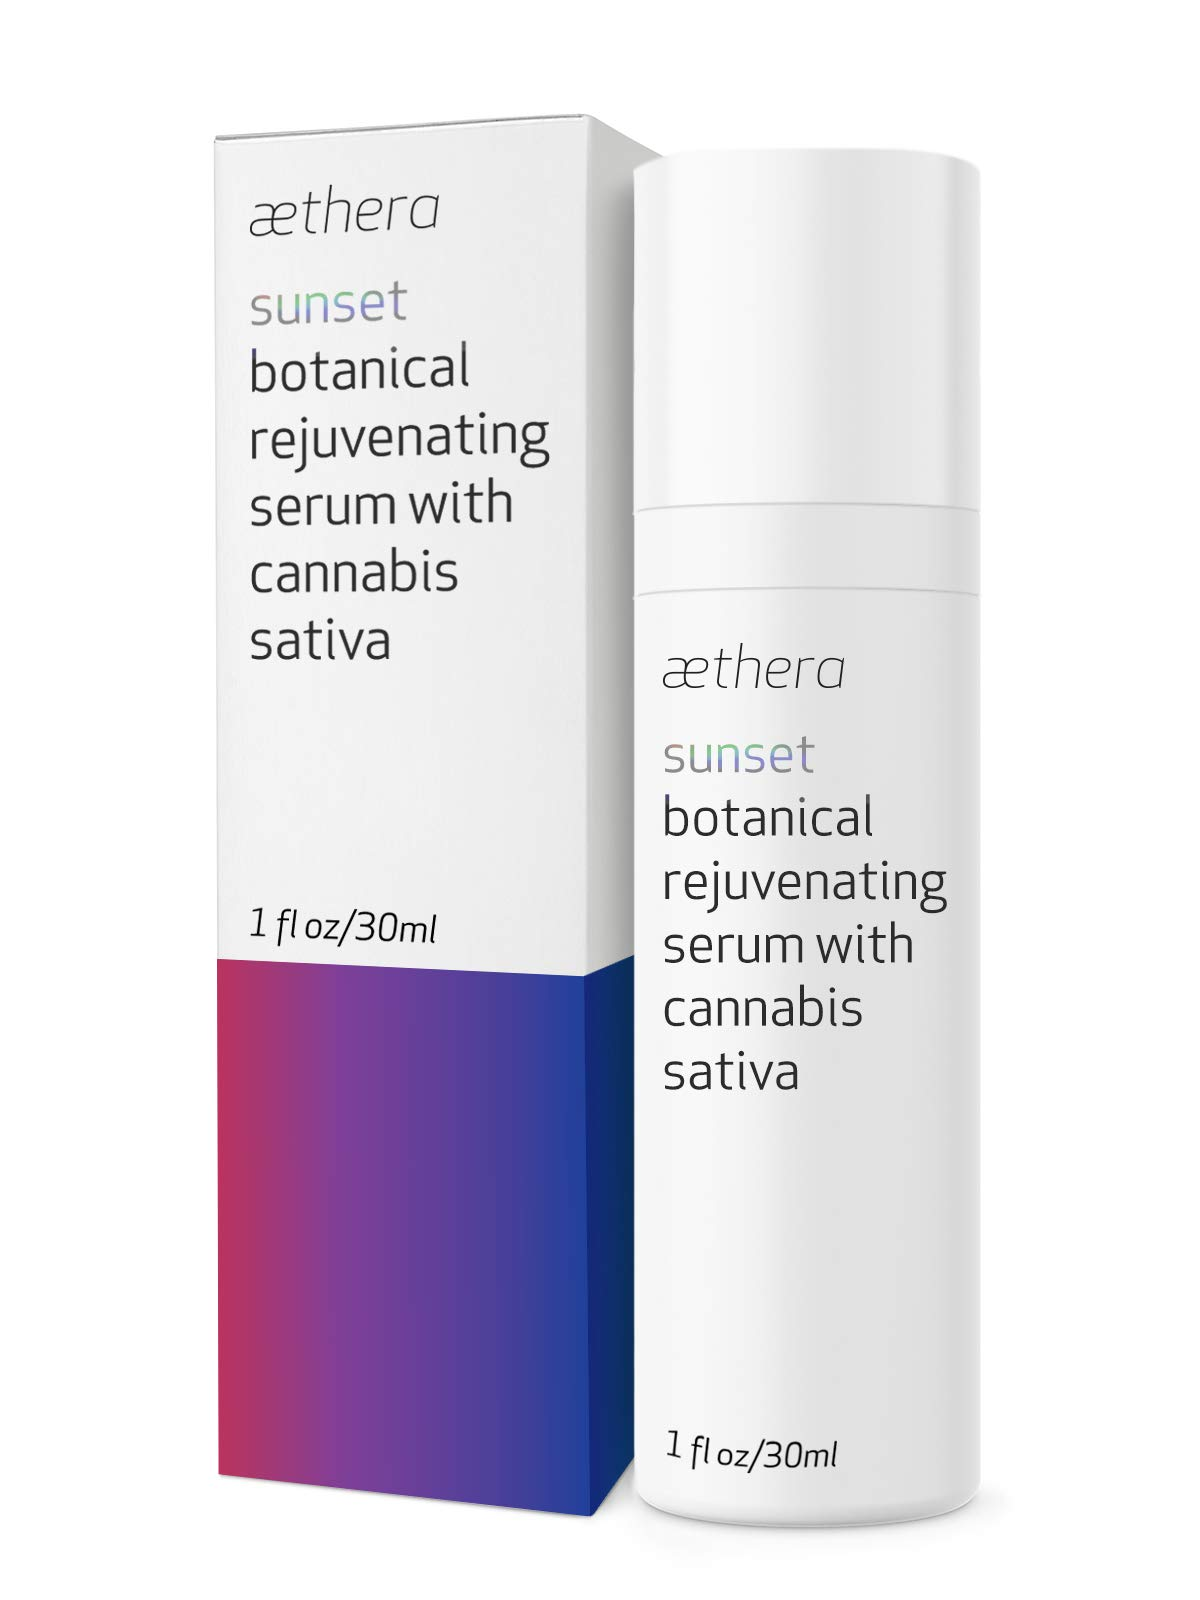 Aethera Beauty Sunset Botanical Rejuvenating Serum with Cannabis Sativa Seed Oil - A soothing night serum to diminish effects of daily stressors on skin while you sleep